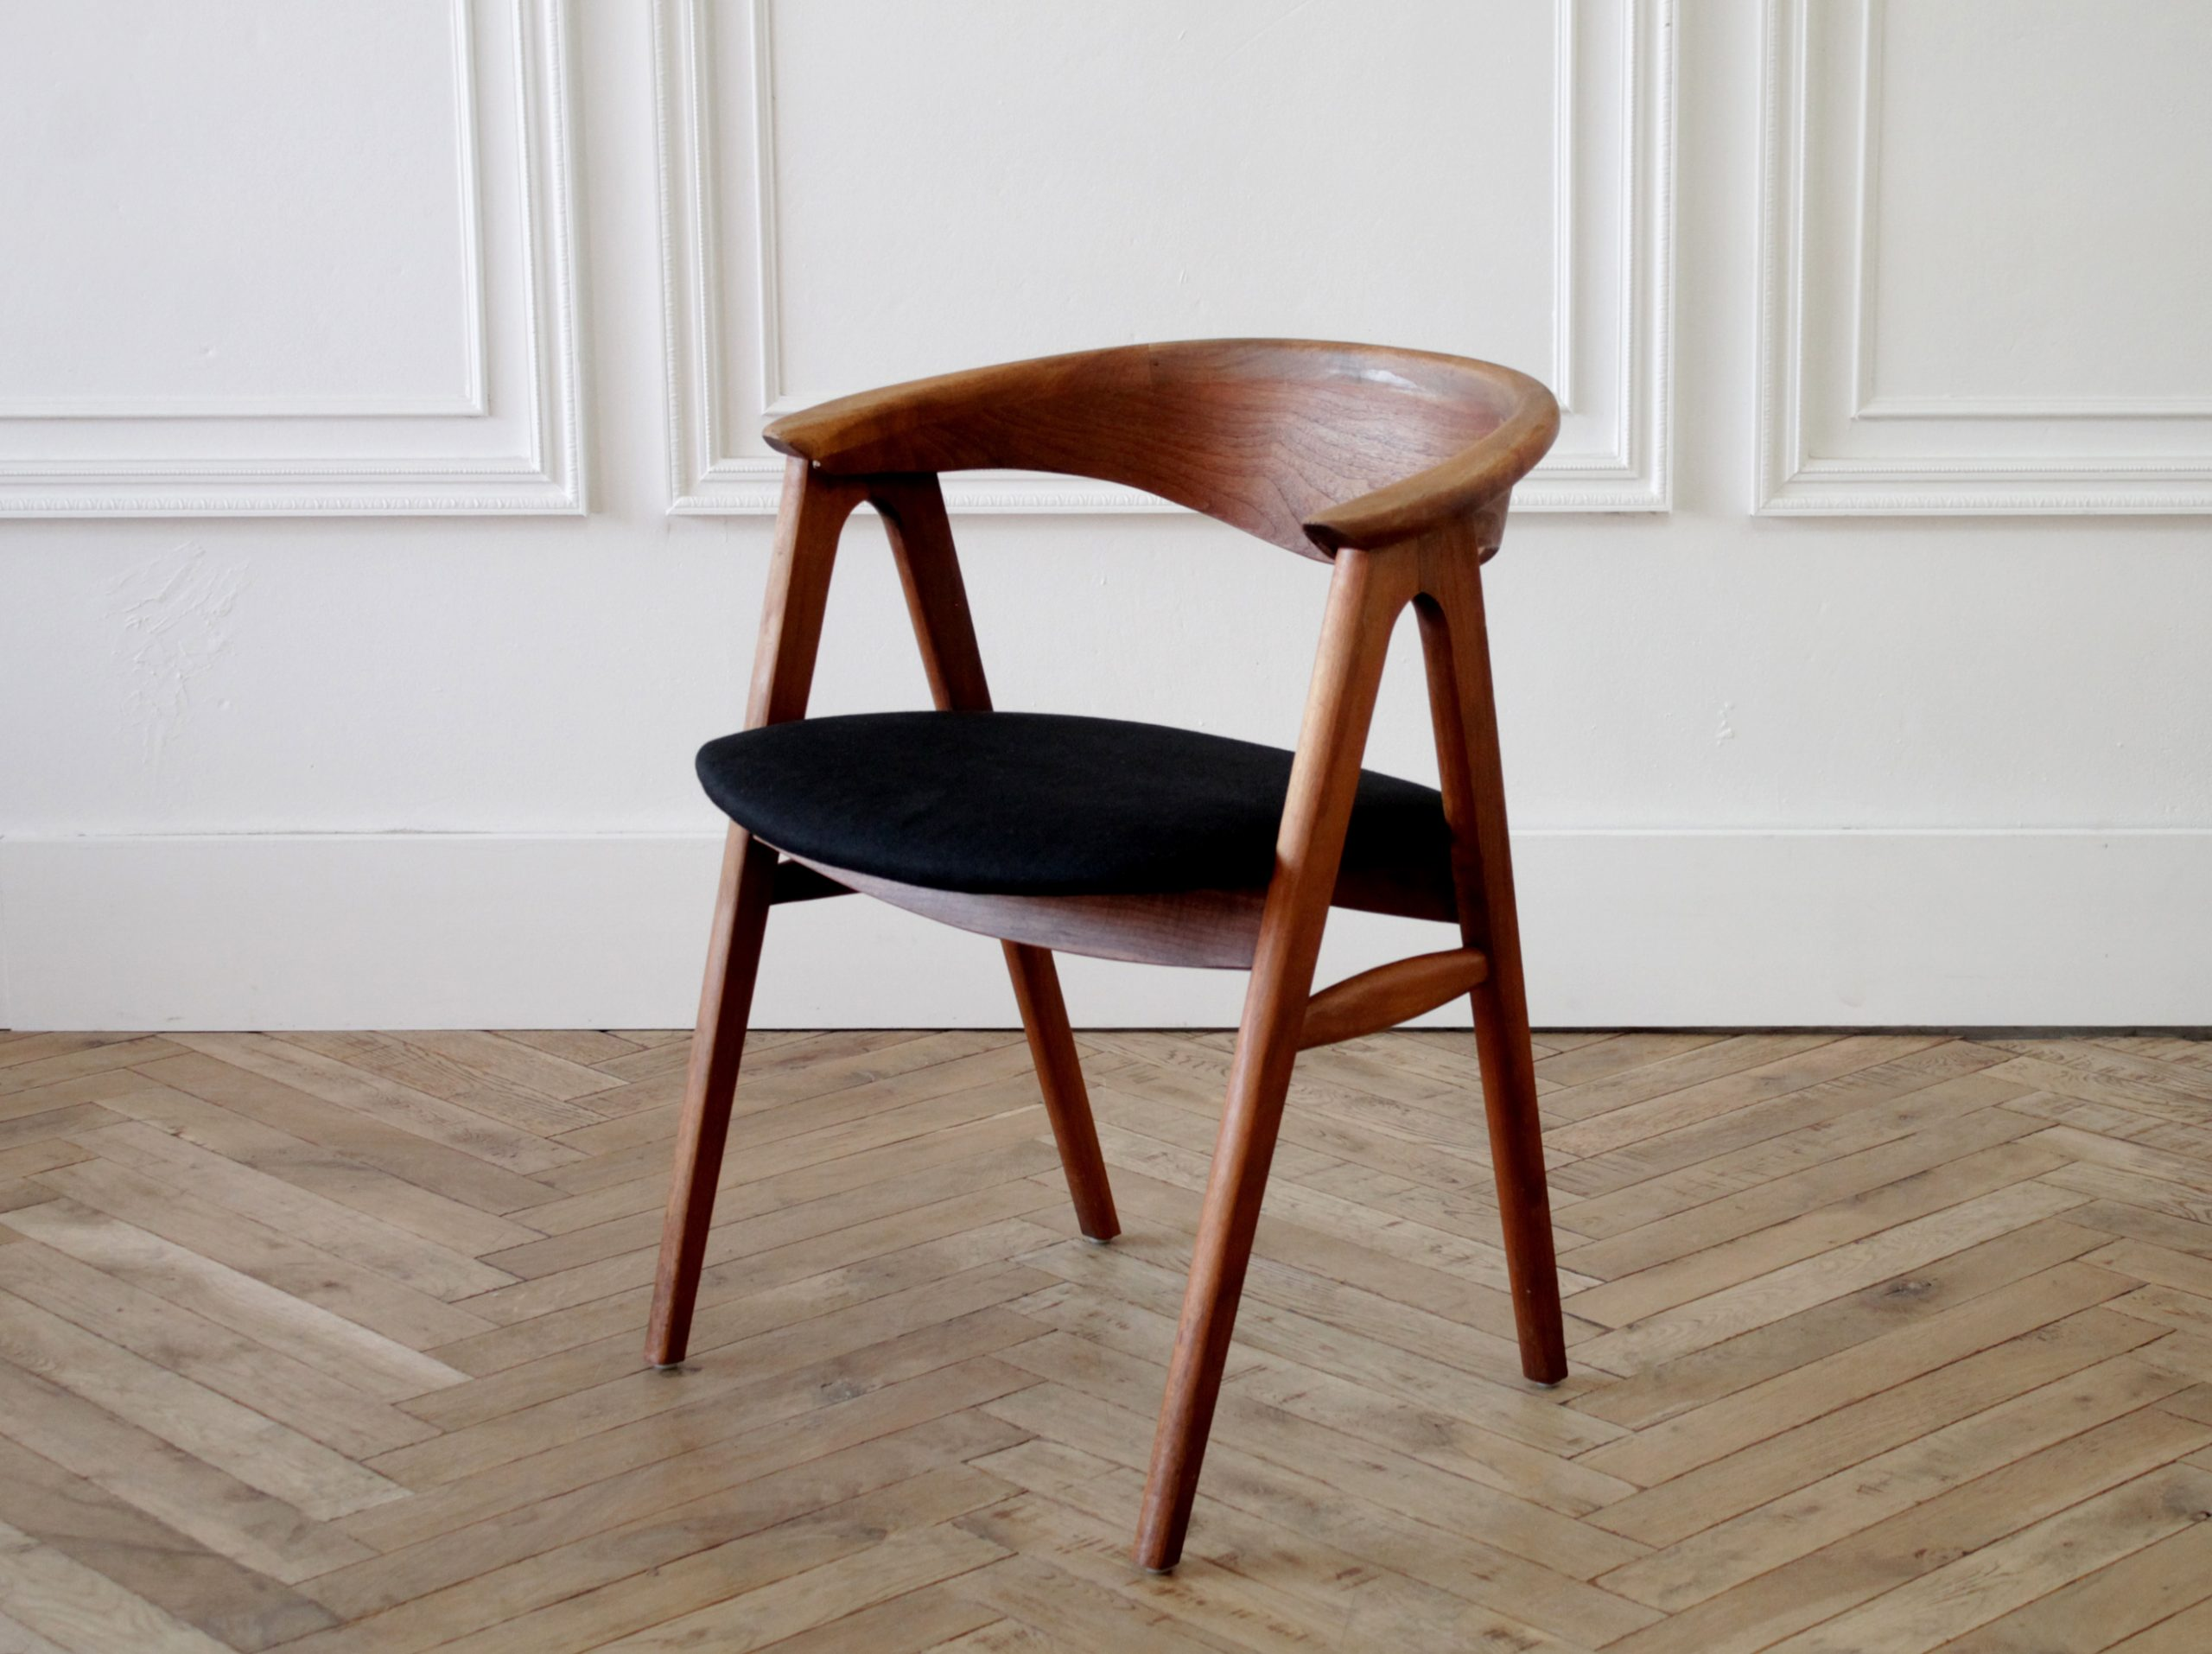 Set of 6 Vintage Mid-Century Modern Style Dining Chairs, circa 1960